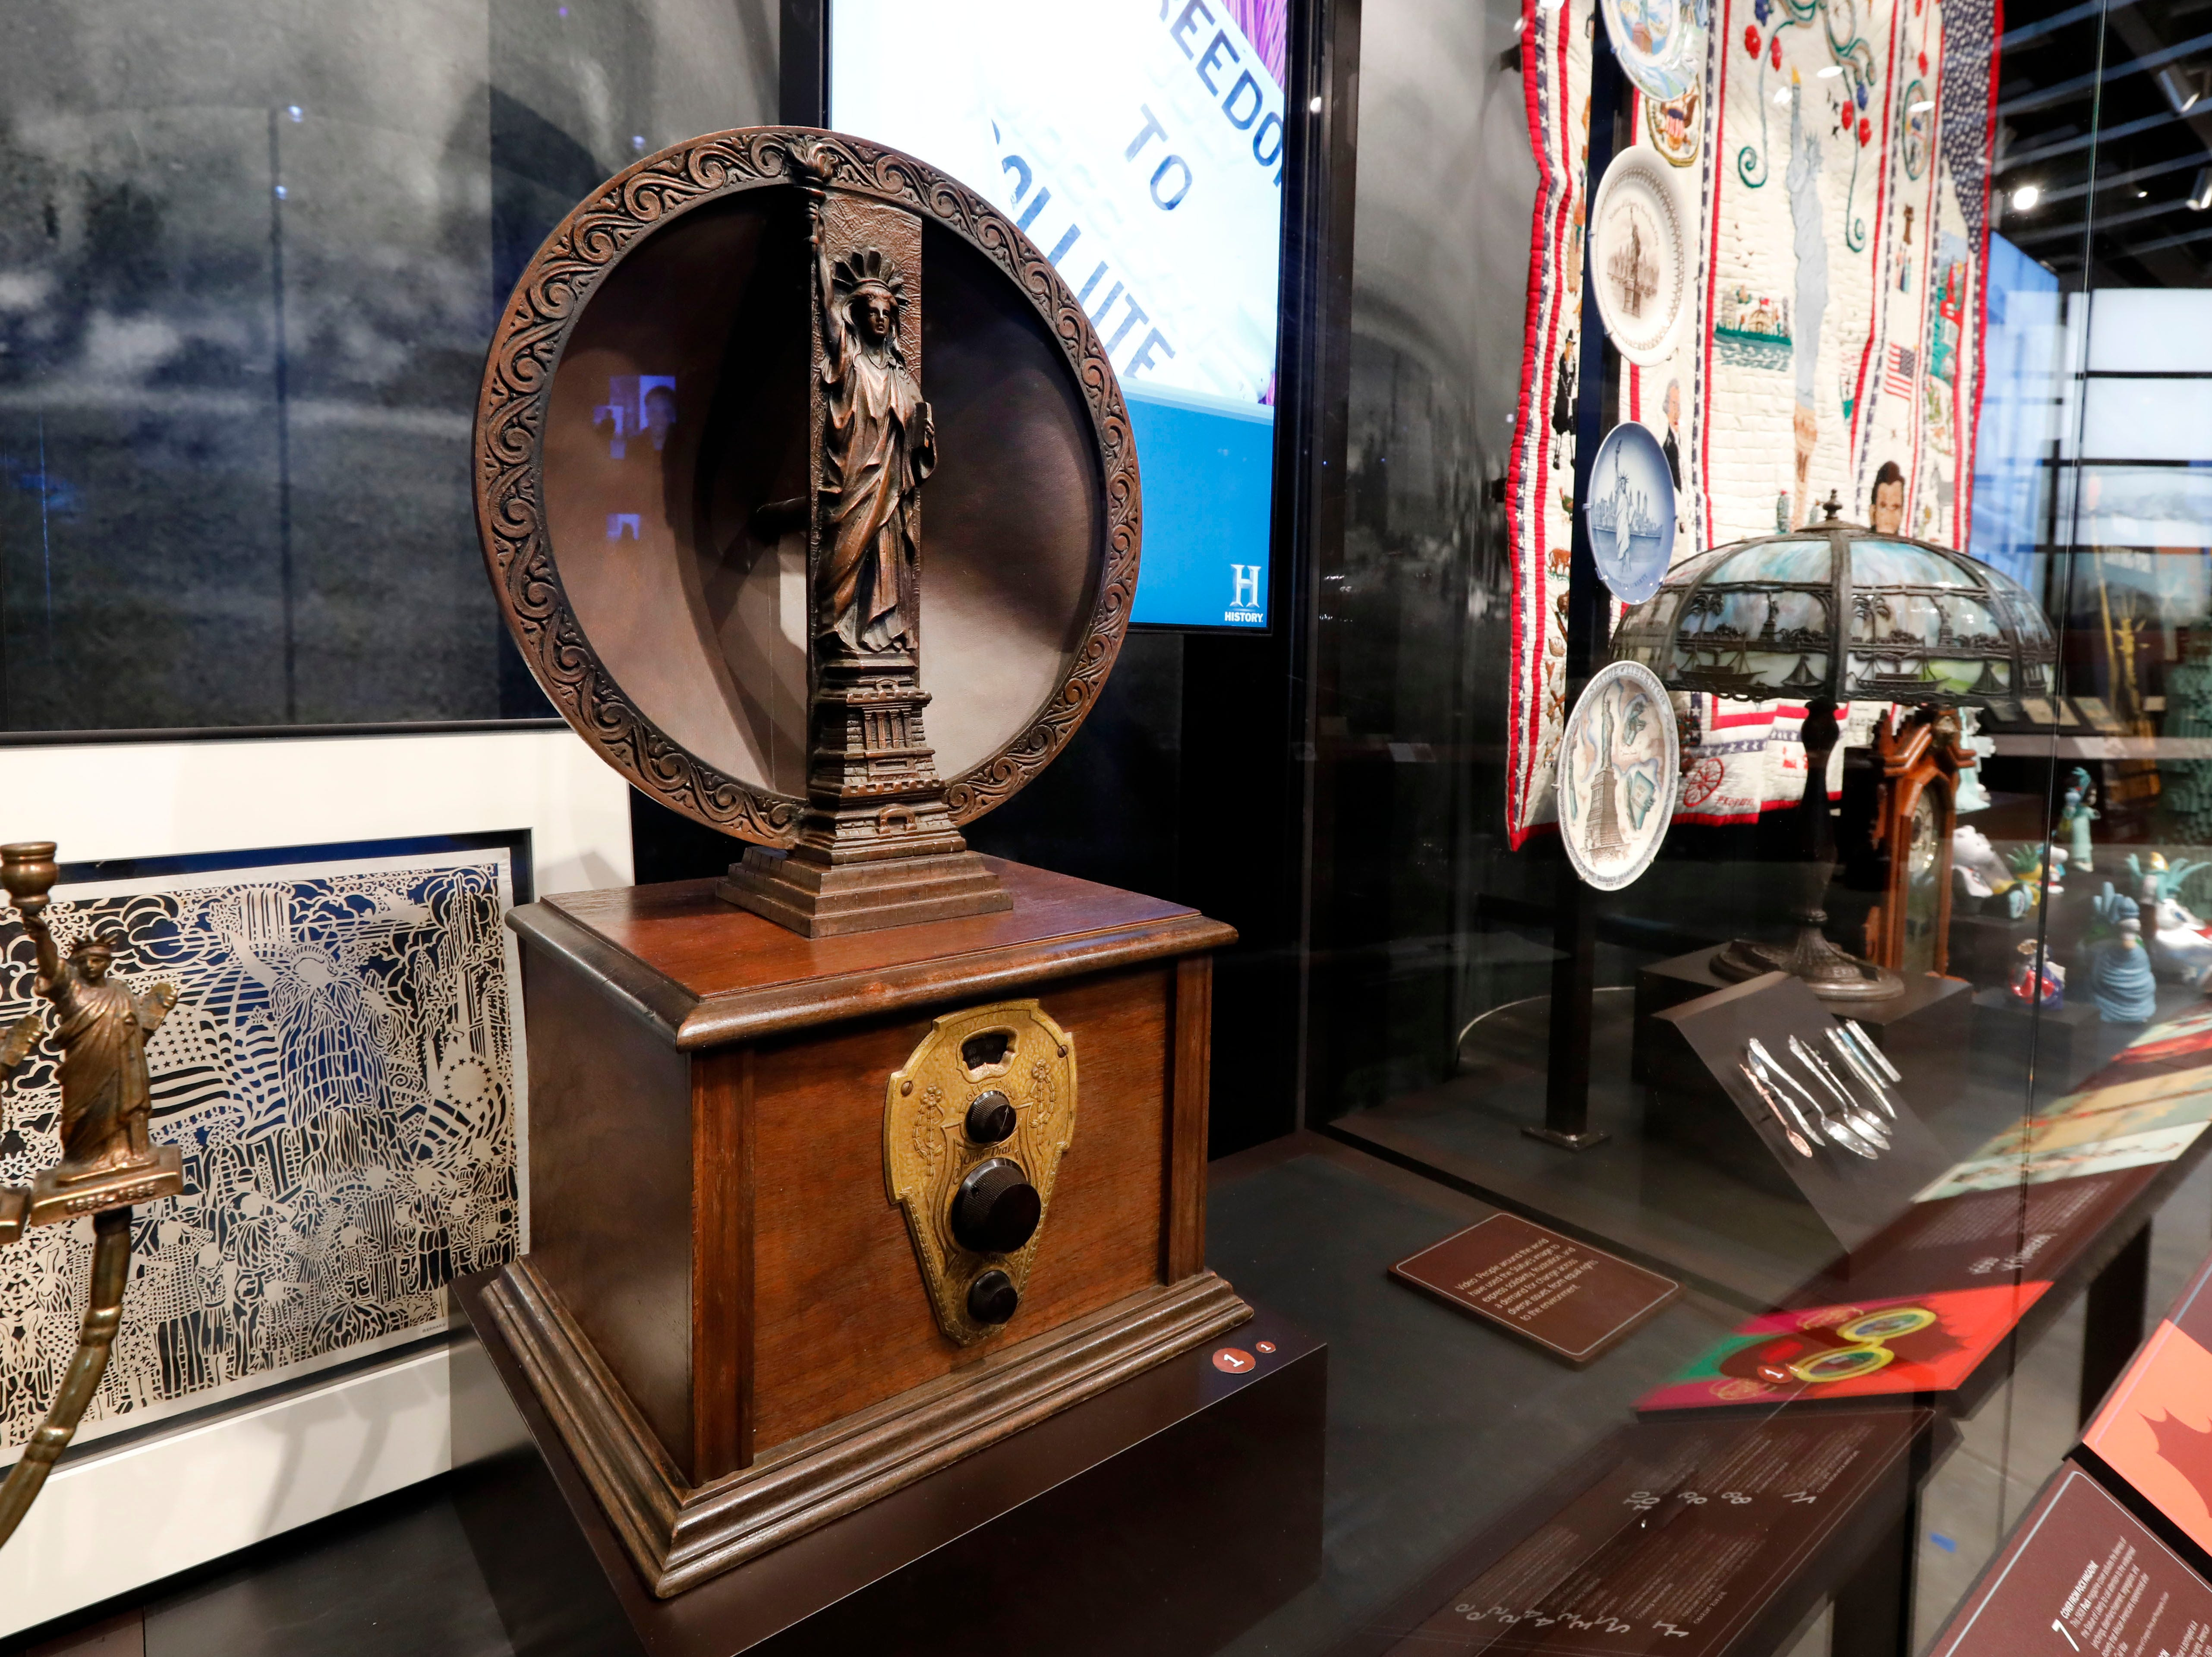 A 1920s Mohawk one-dial radio and speaker is among the artifacts displayed in the new Statue of Liberty Museum.